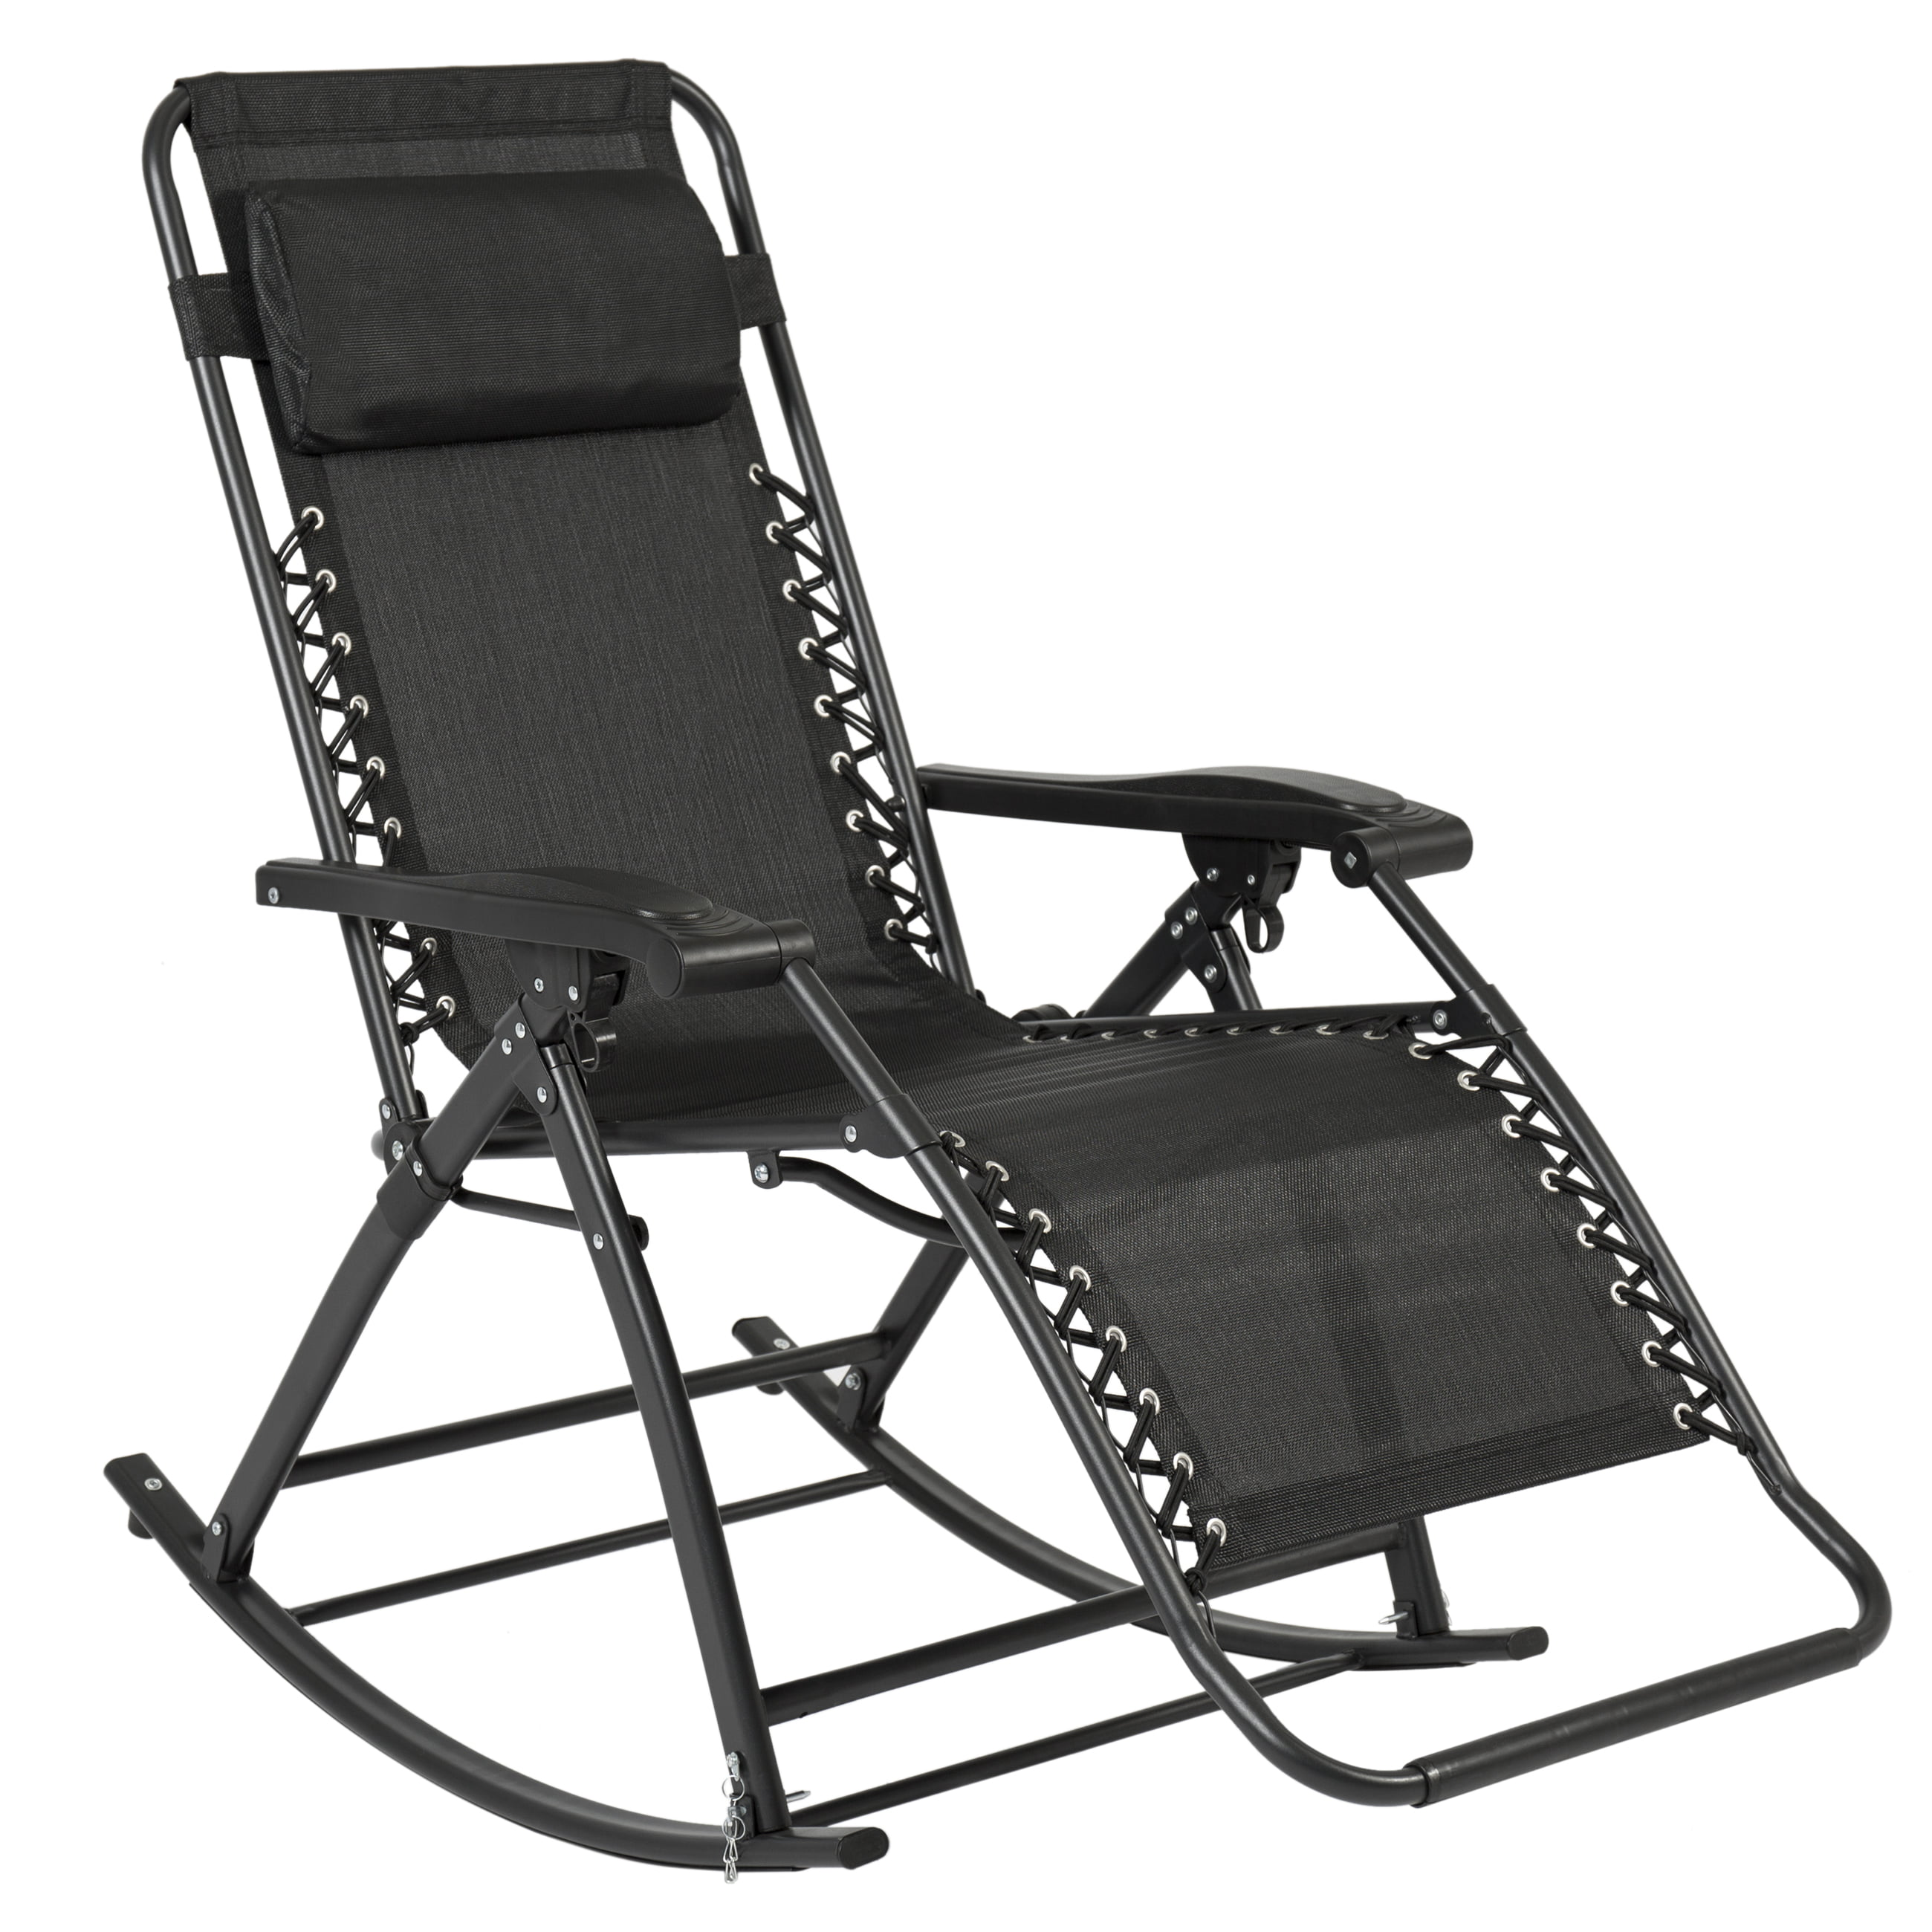 camping amazon bahama clip chair comfort umbrella gravity lounge on best rio custom table fold how beach brand flat for chairs concert to you zero tommy just chaise tr folding walmart lawn